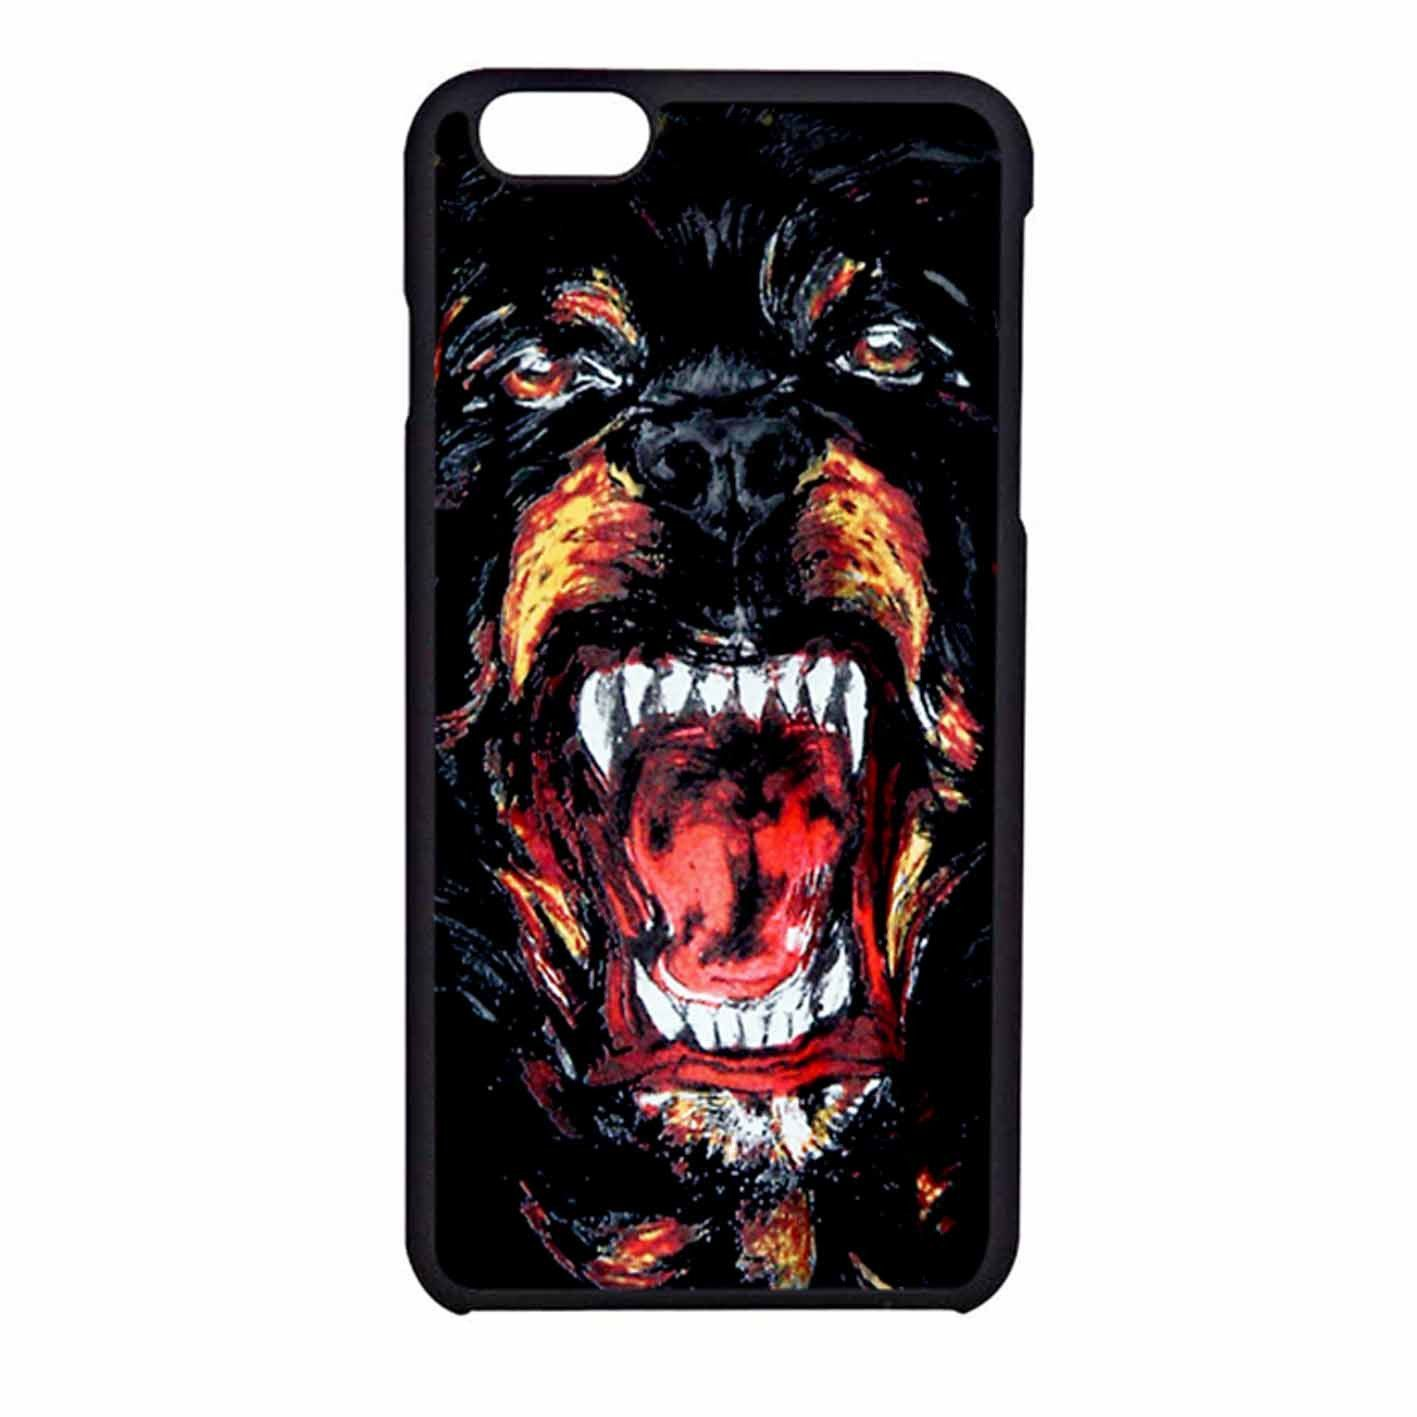 Givenchy Rottweiler Face IPhone 6SS Case